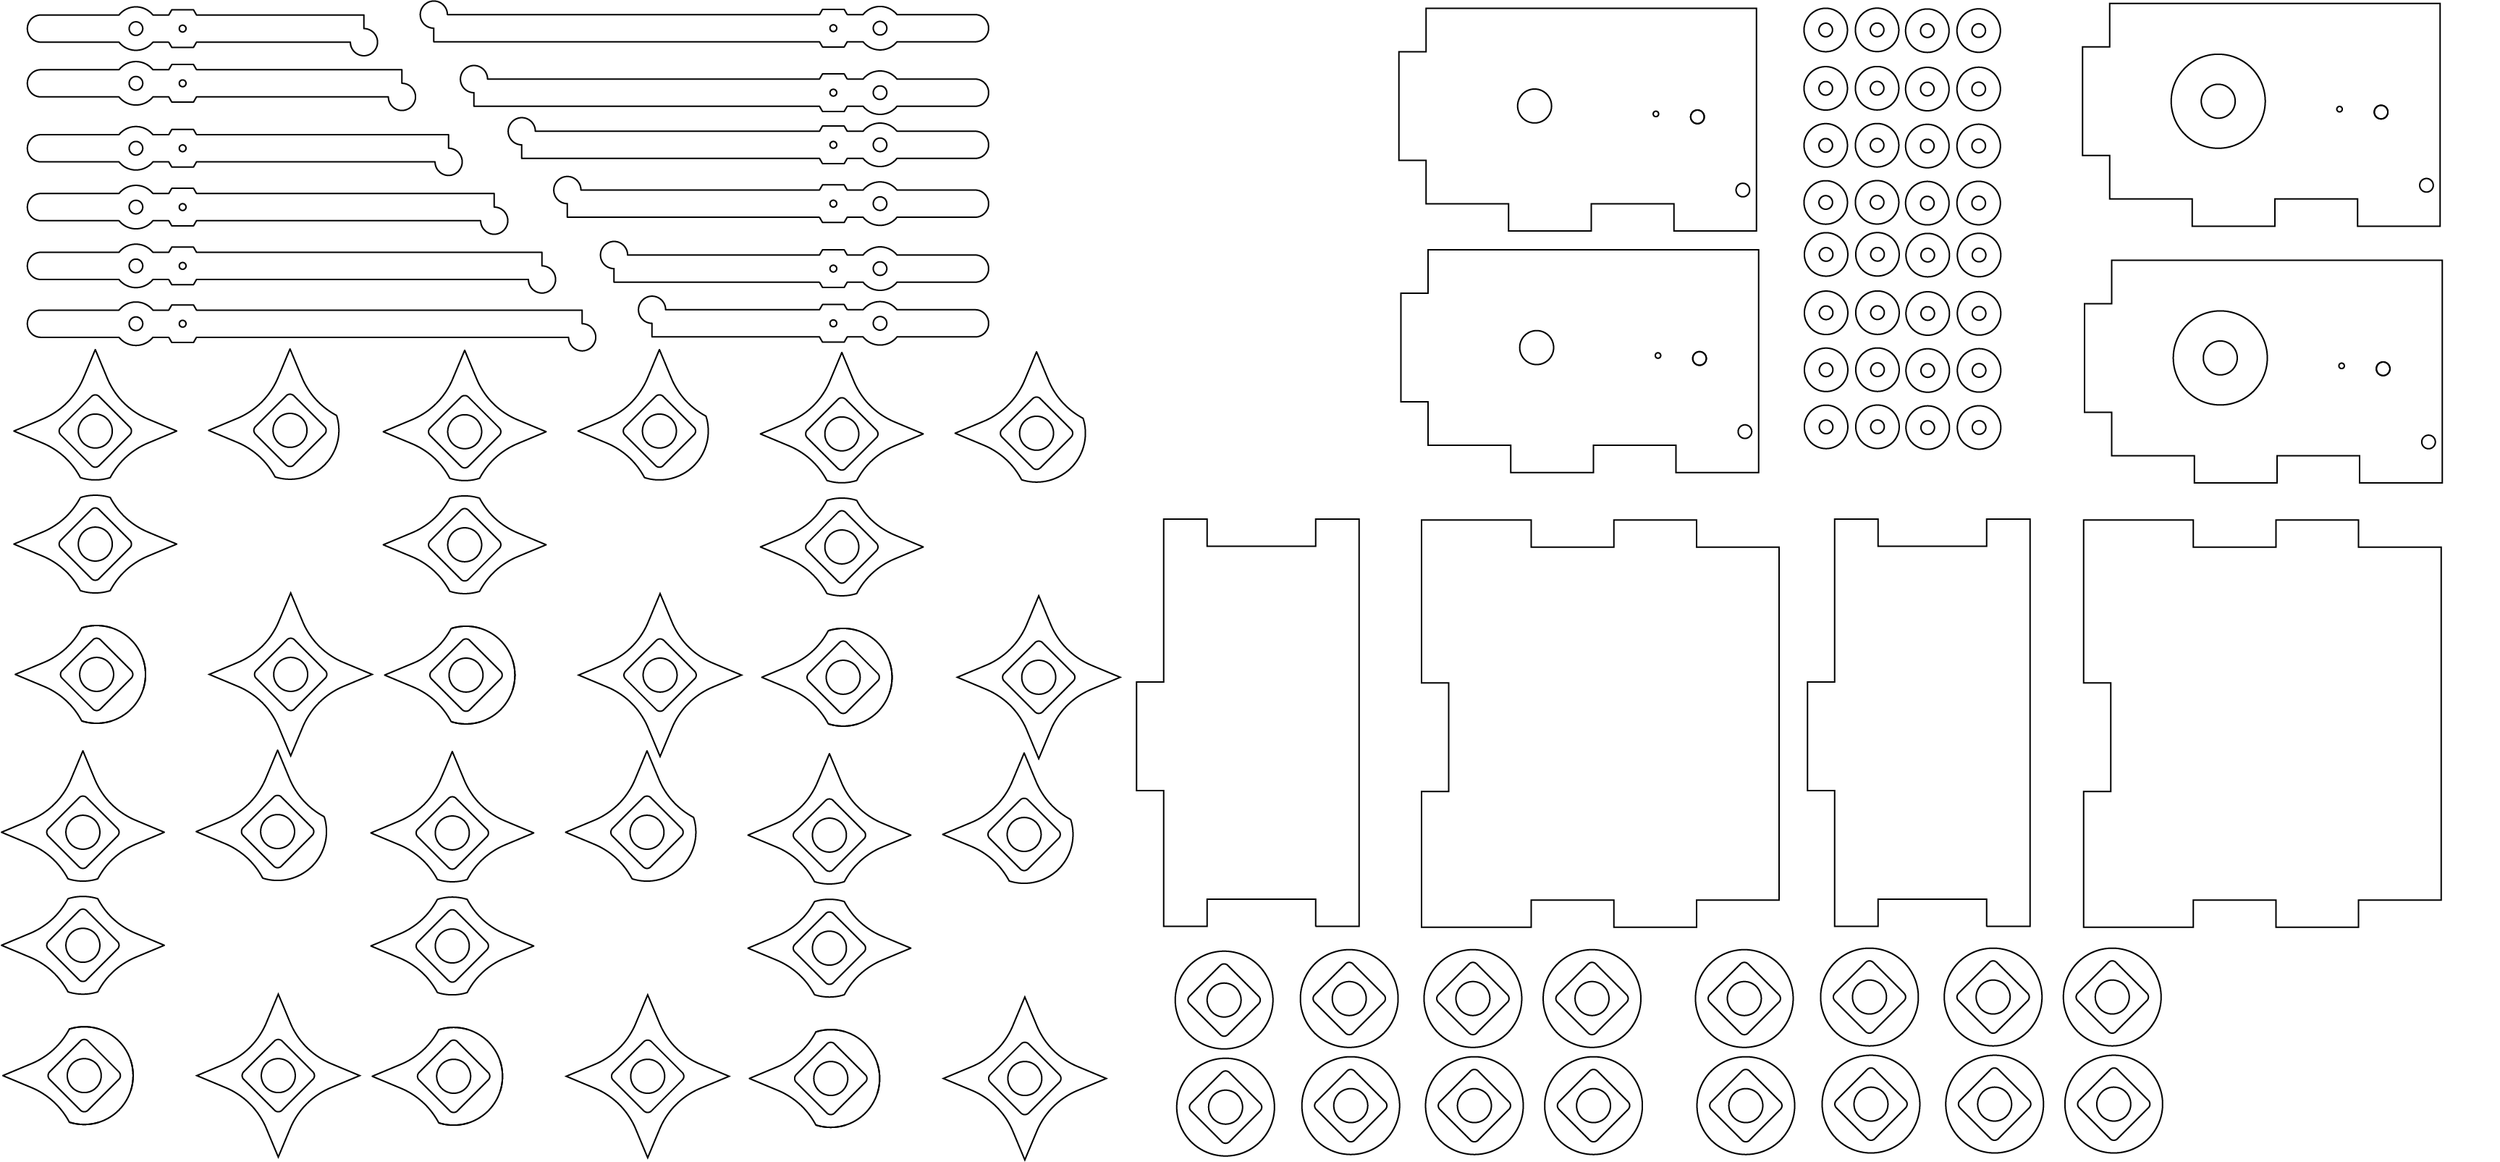 Fingerstyle Sequencer Drawing